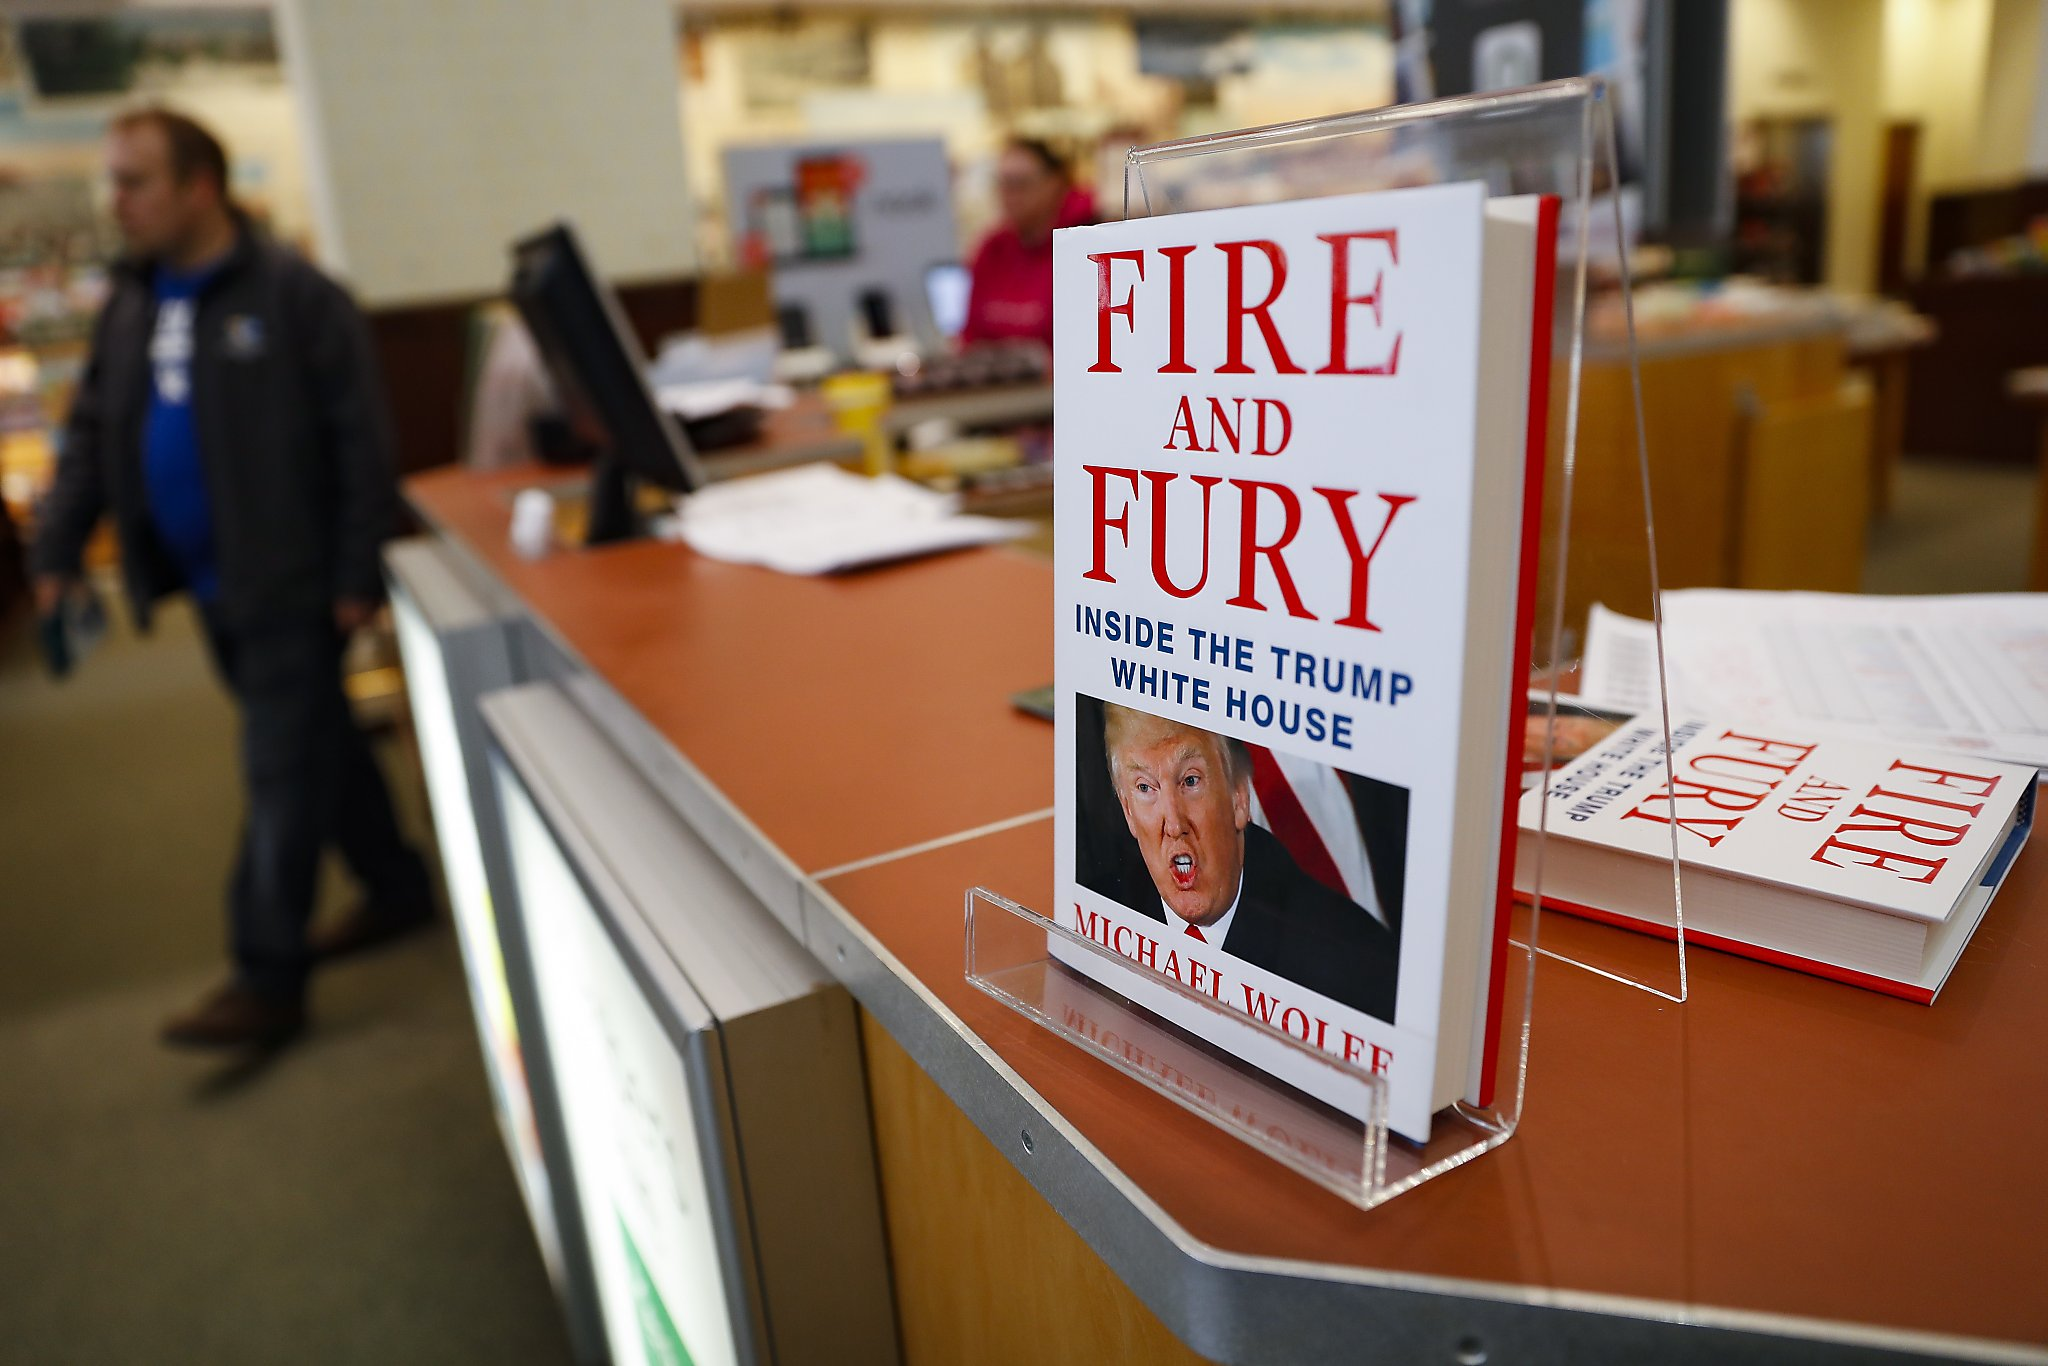 Fire and fury breaks wait list record at the sf public library fire and fury breaks wait list record at the sf public library sfgate fandeluxe Image collections